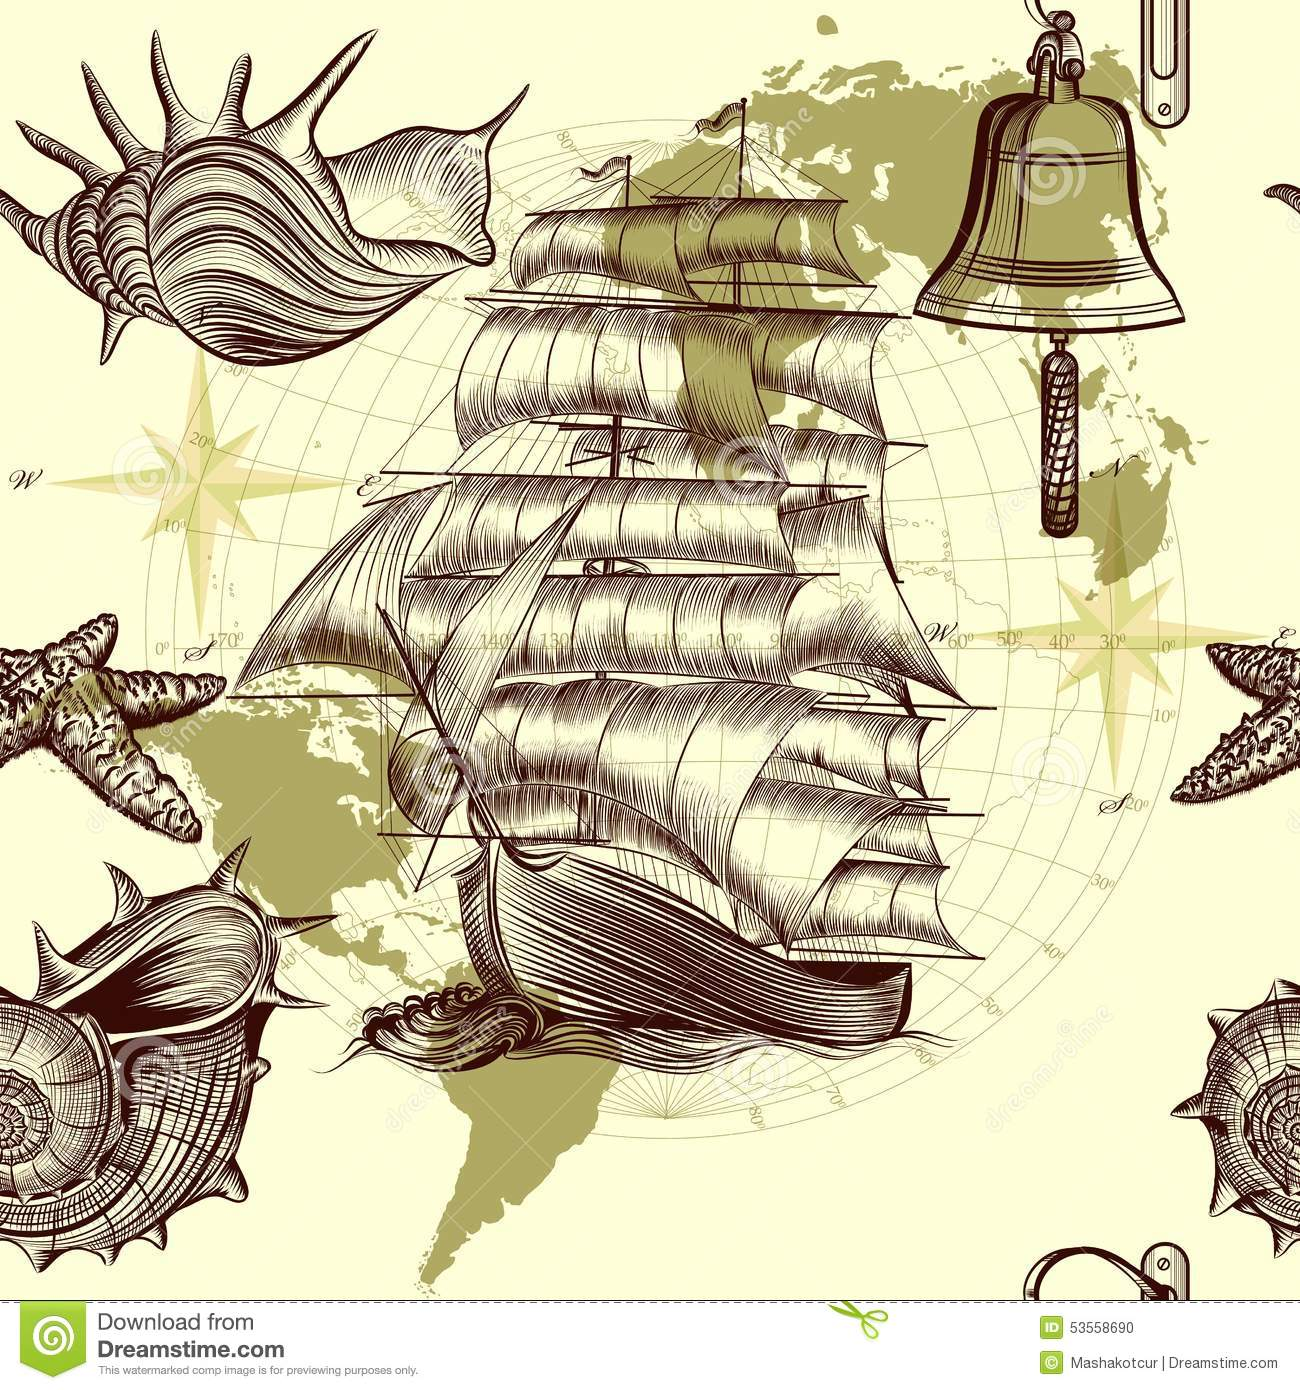 Wallpaper Map Design : Antique pattern with ship shells and map tripping theme